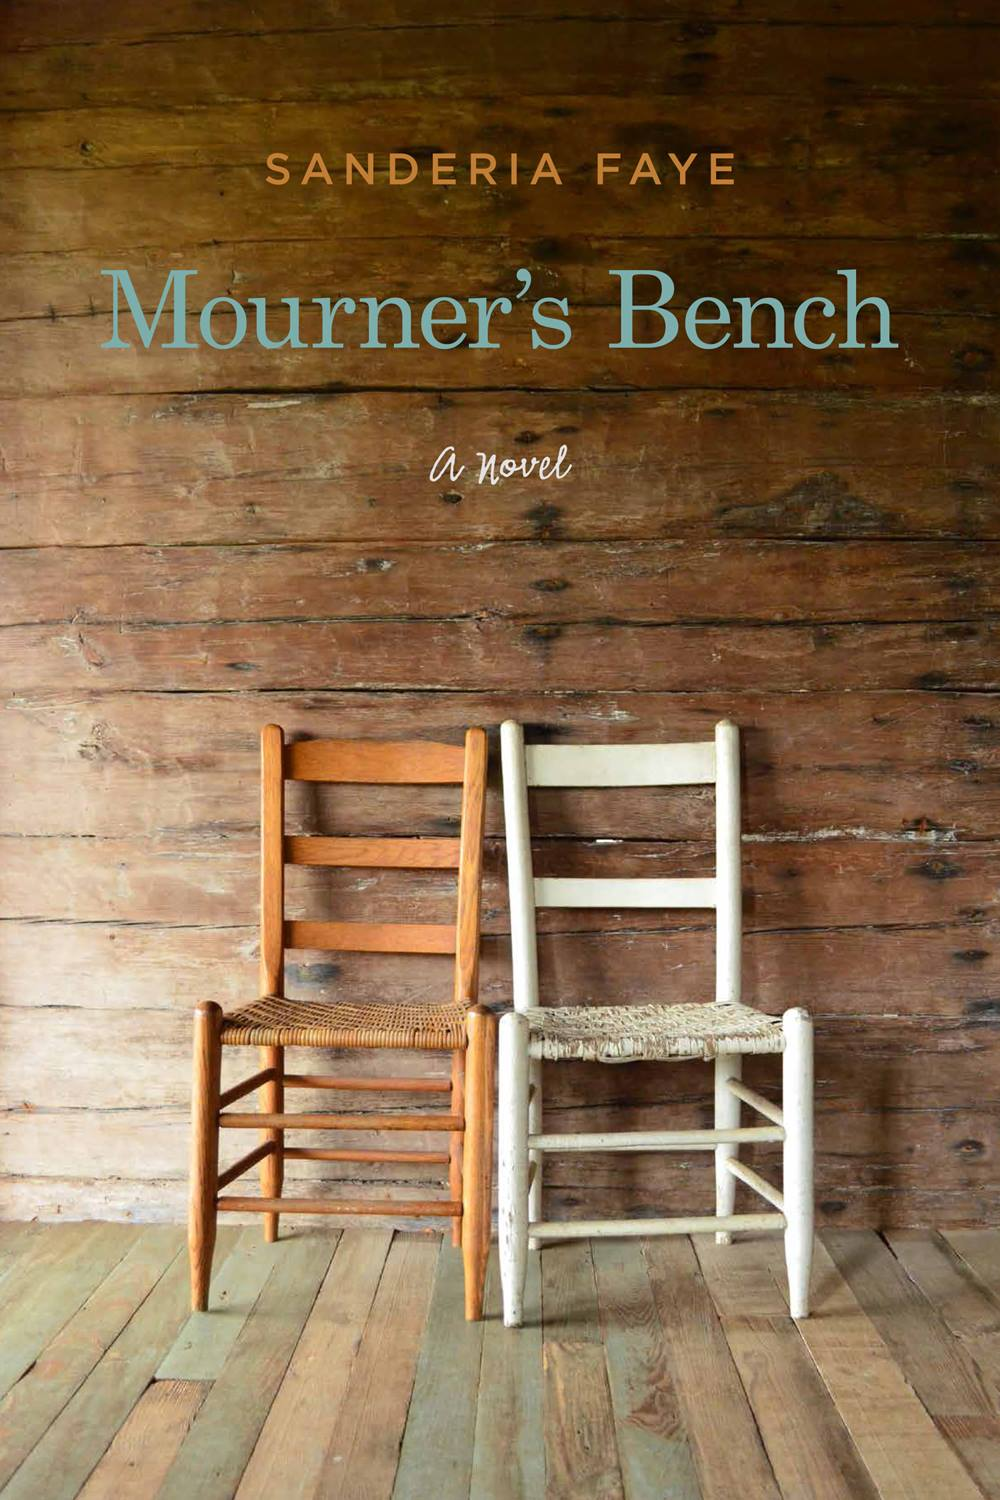 Mourner's Bench Book Cover